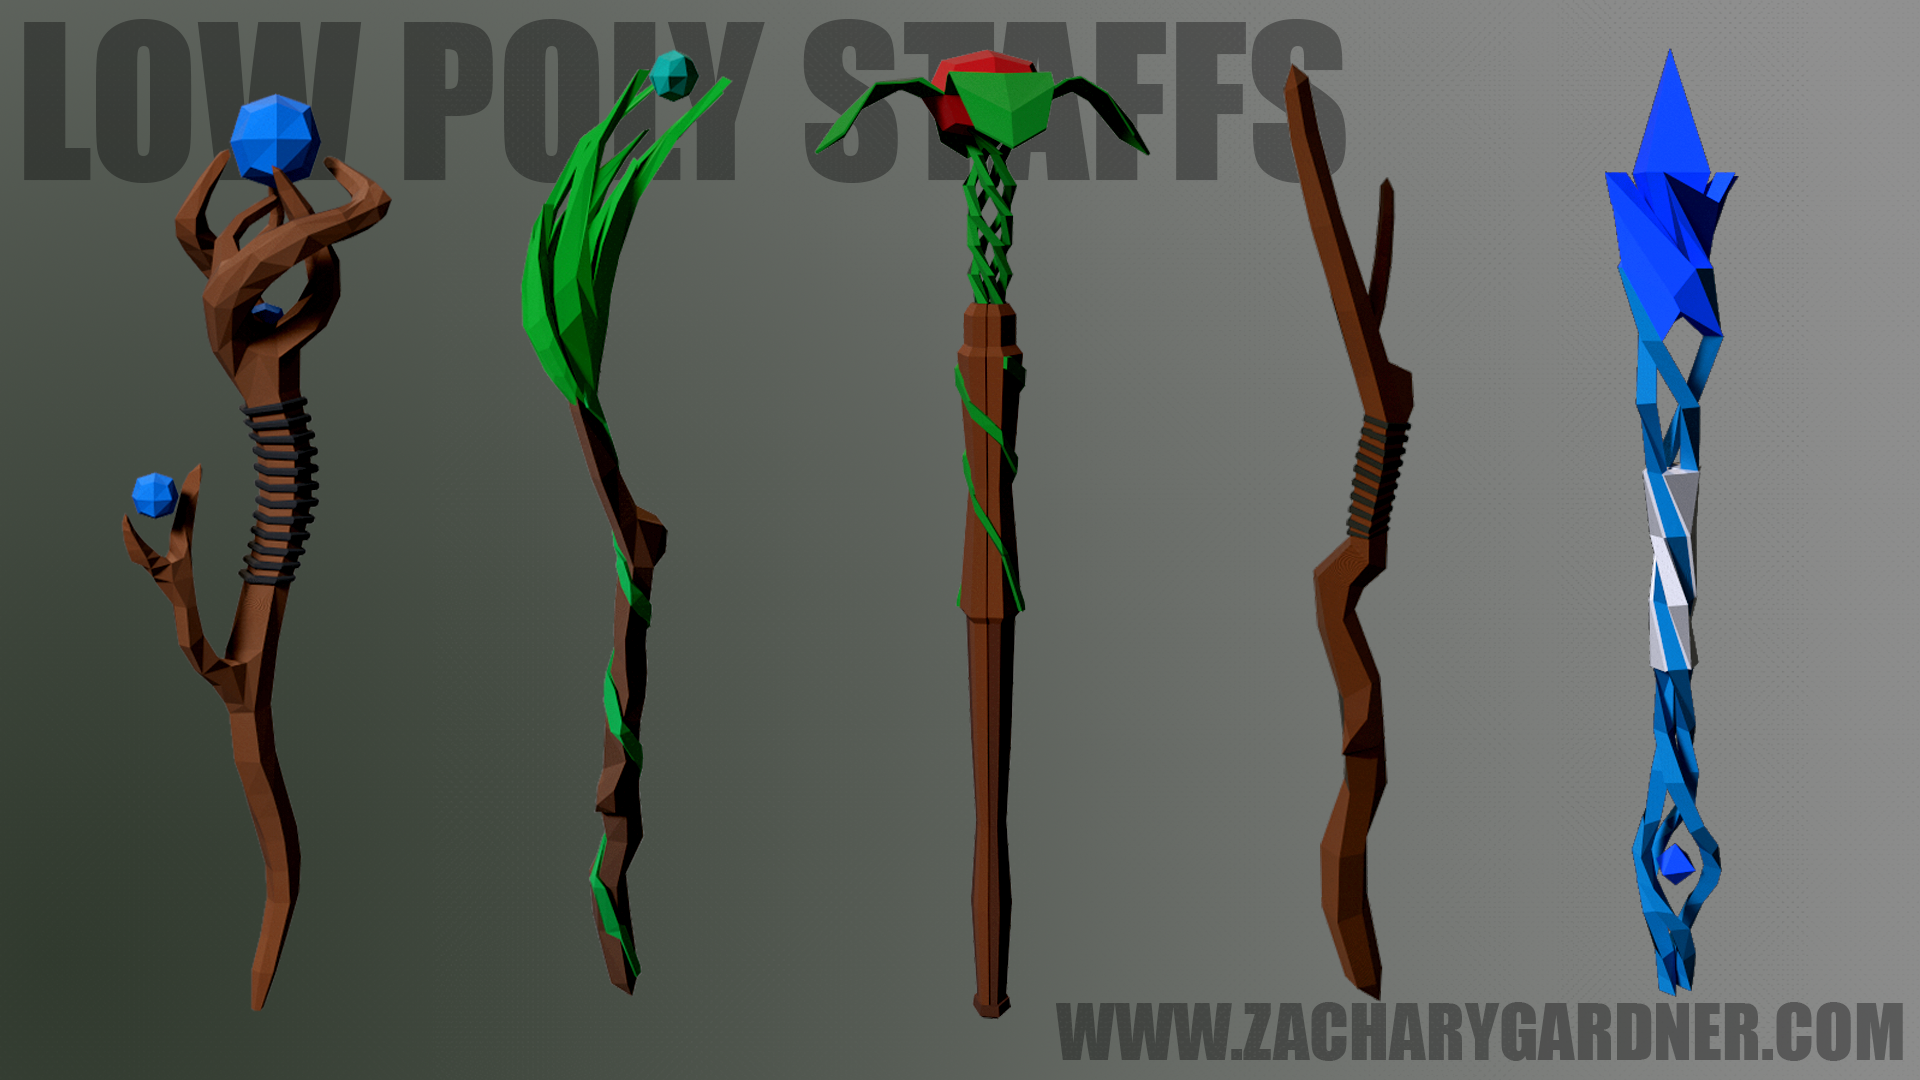 Low poly staffs I made for a Roblox game